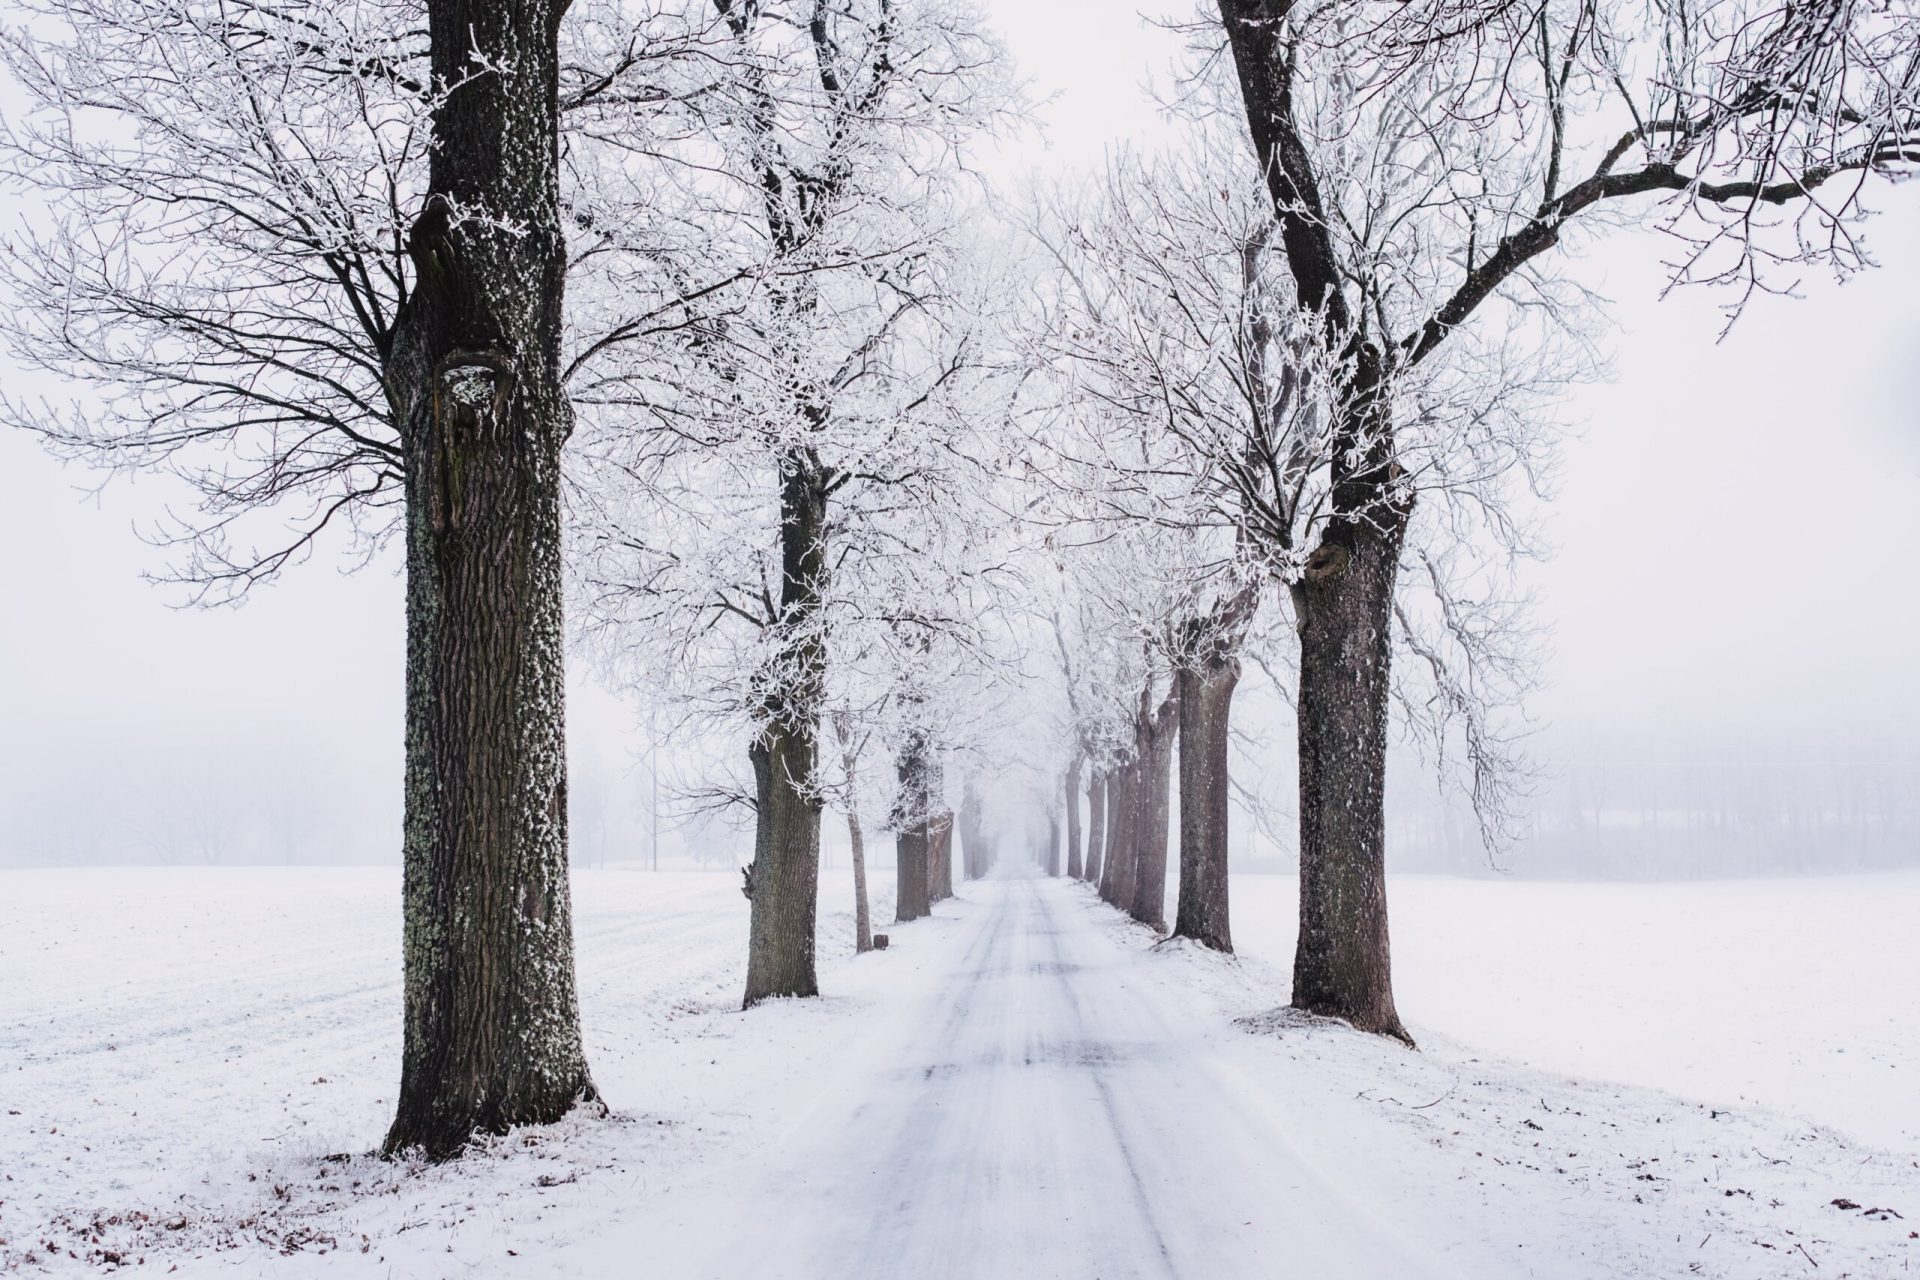 Winter Trees Image - Photography Scholarships in Winter